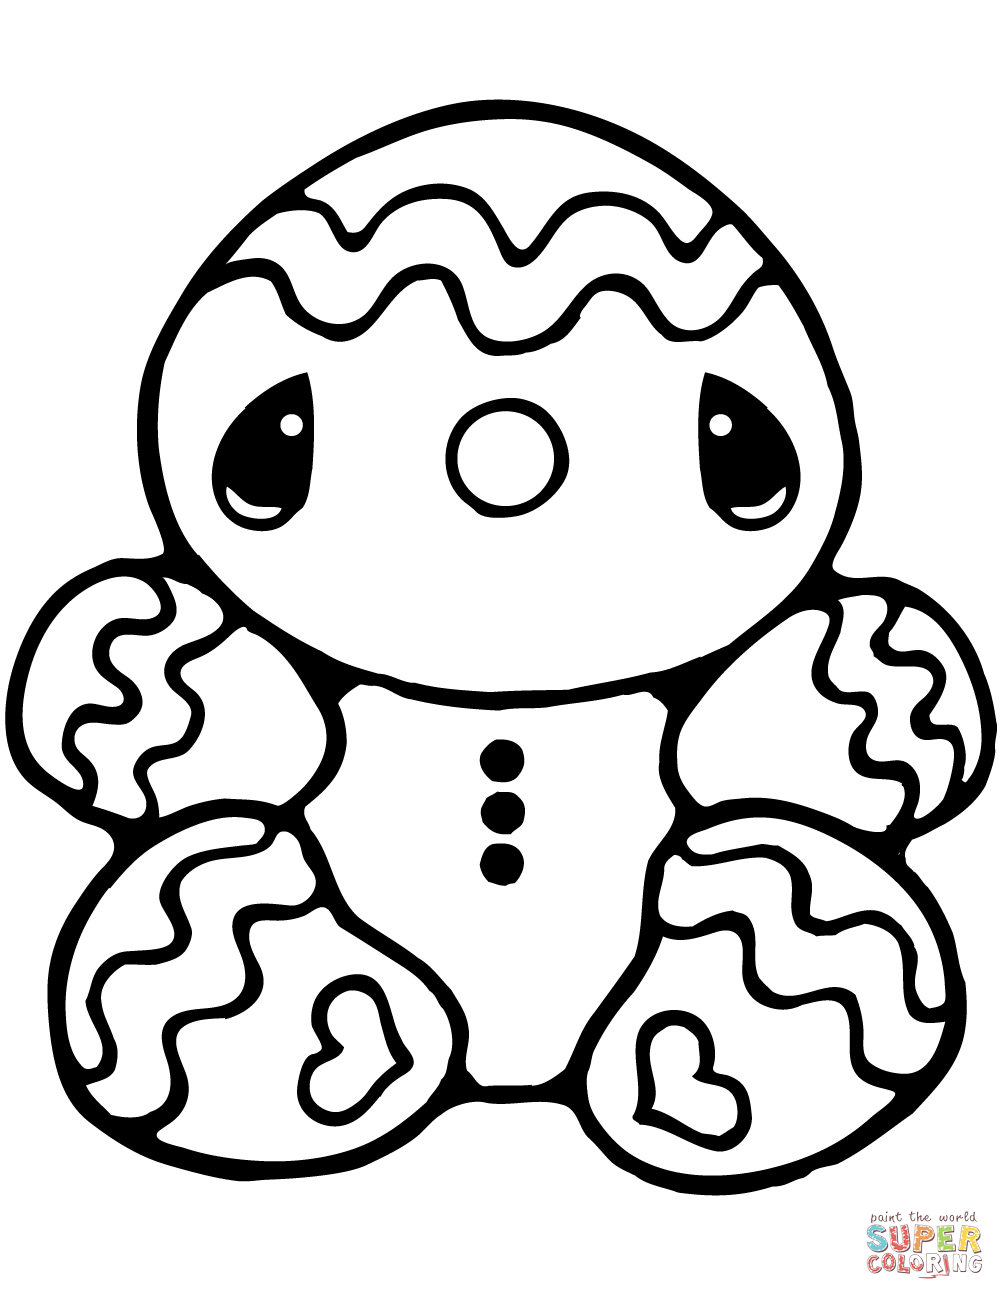 1005x1300 Brilliant Ideas Gingerbread Man Coloring Page Sheet Or Pattern